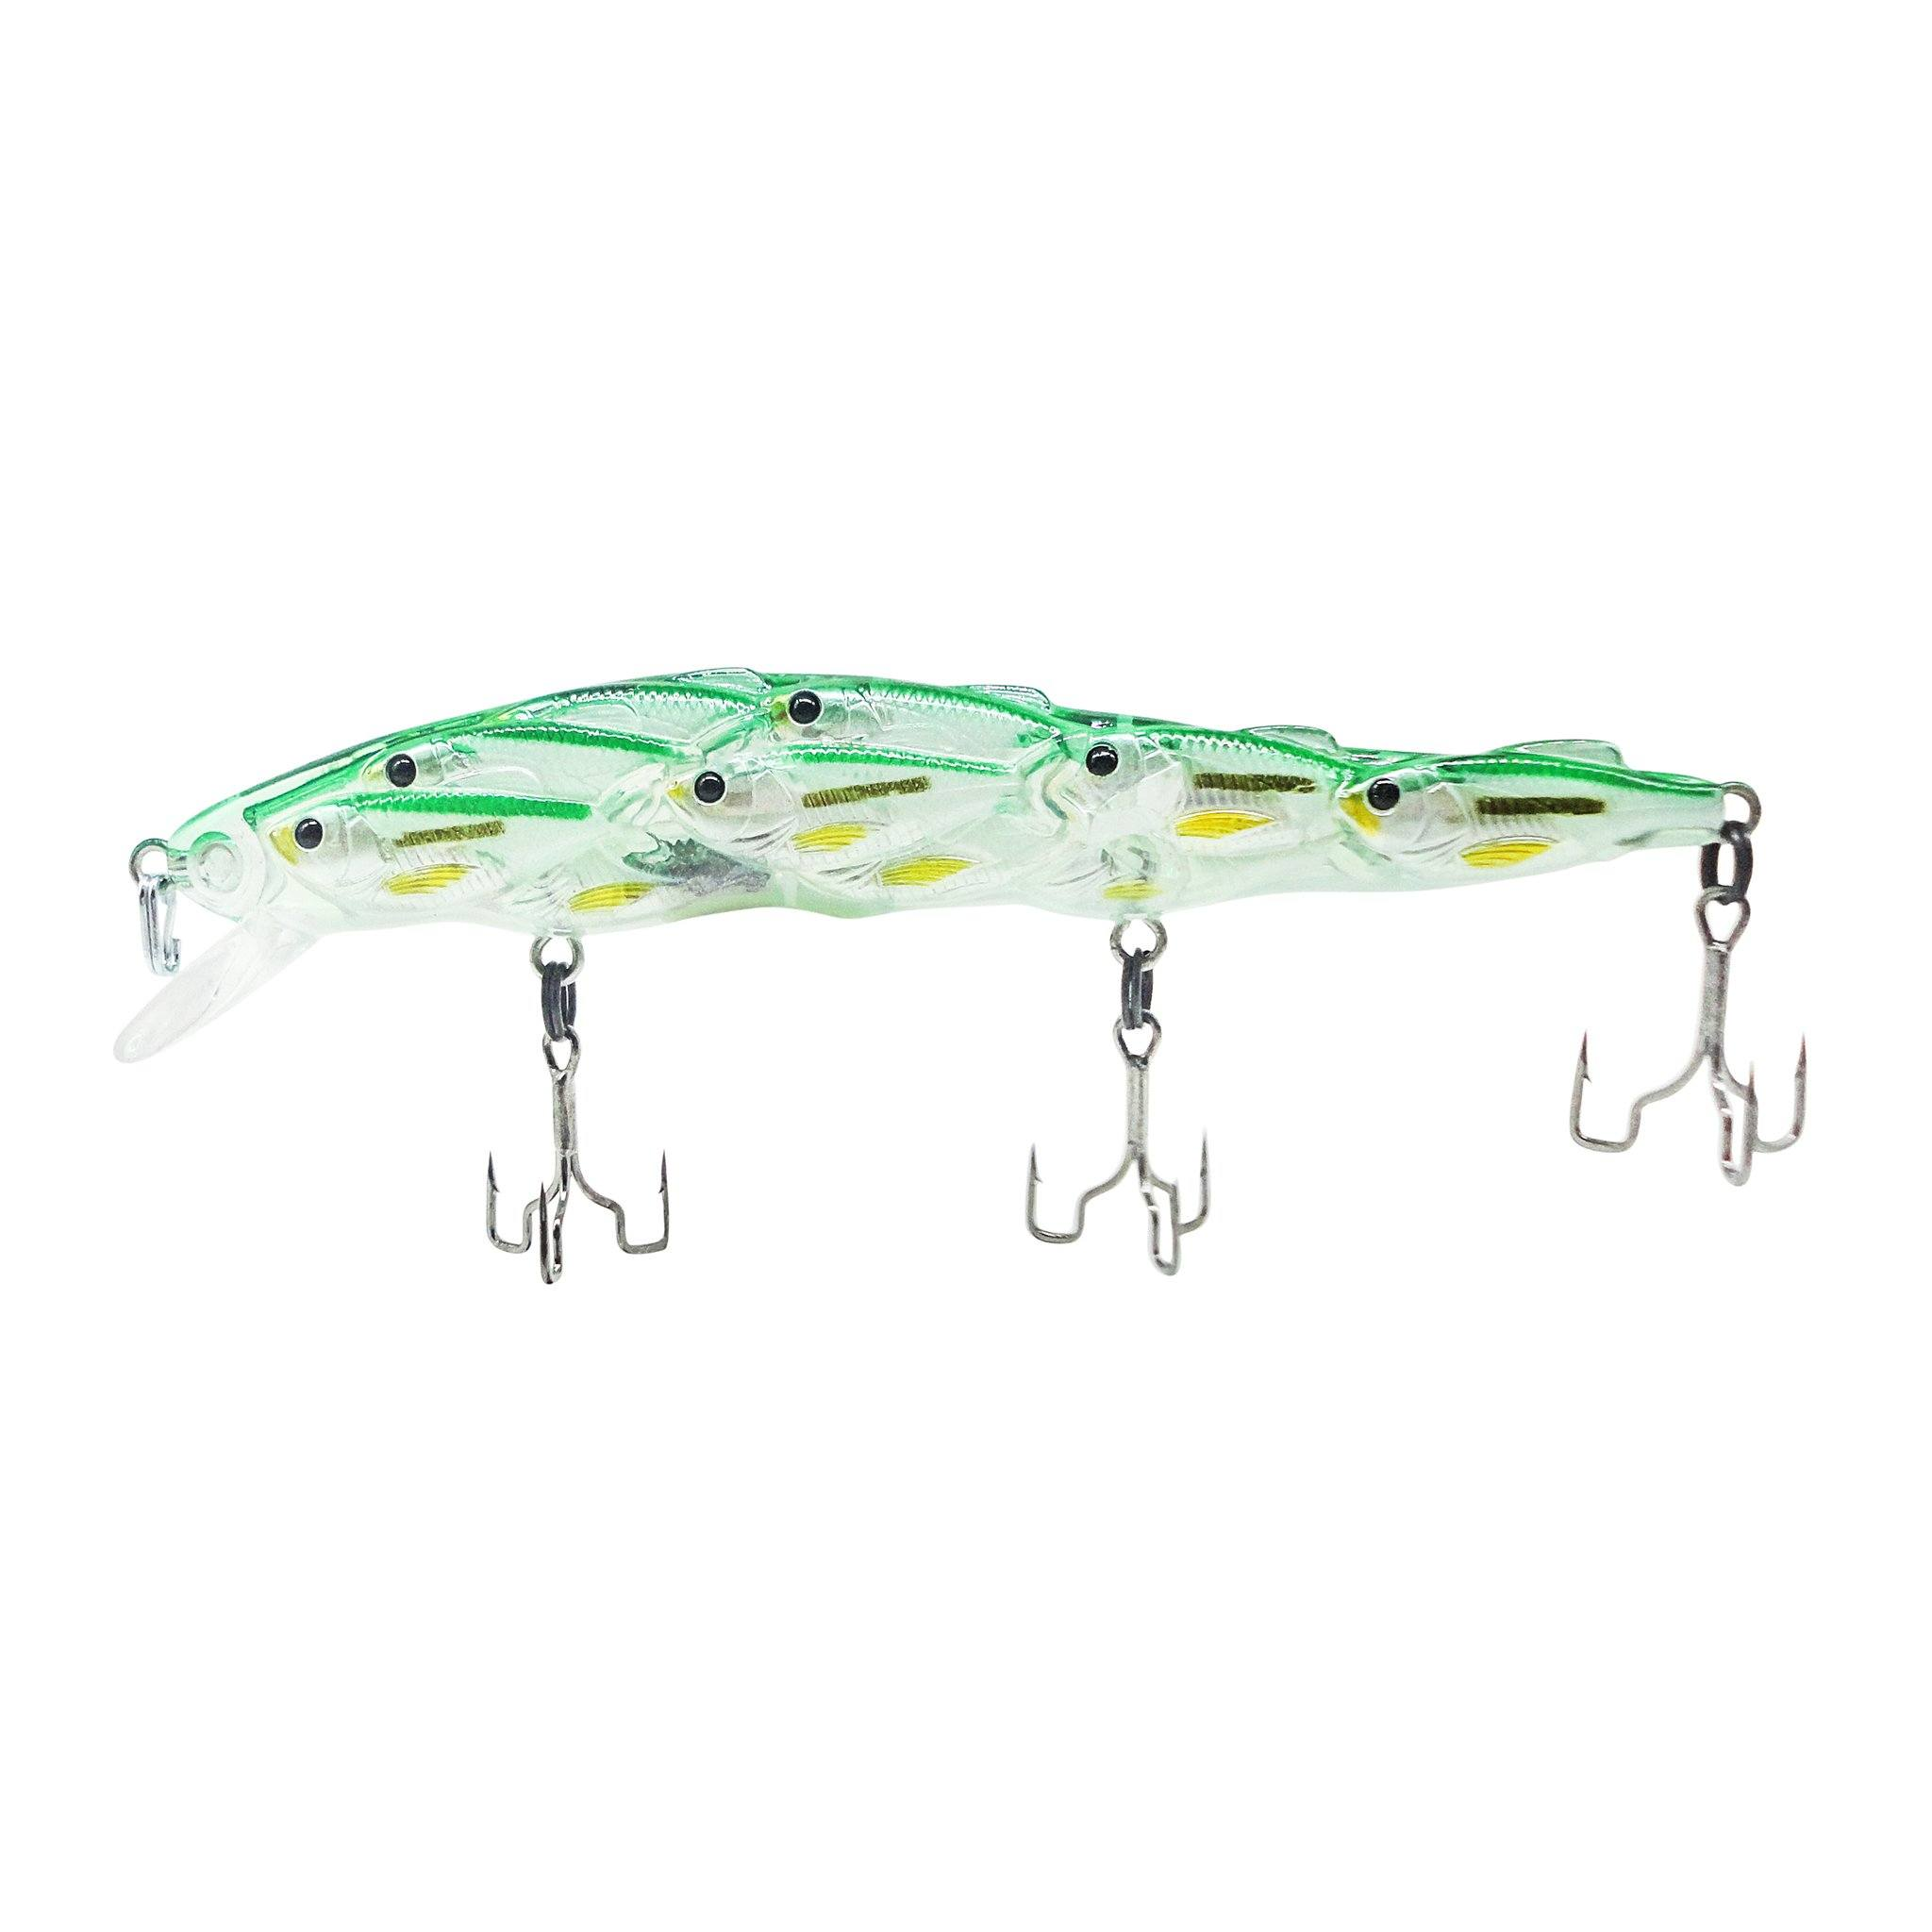 Trapper Schooling Jerkbait Related Trapper Tackle LLC Green